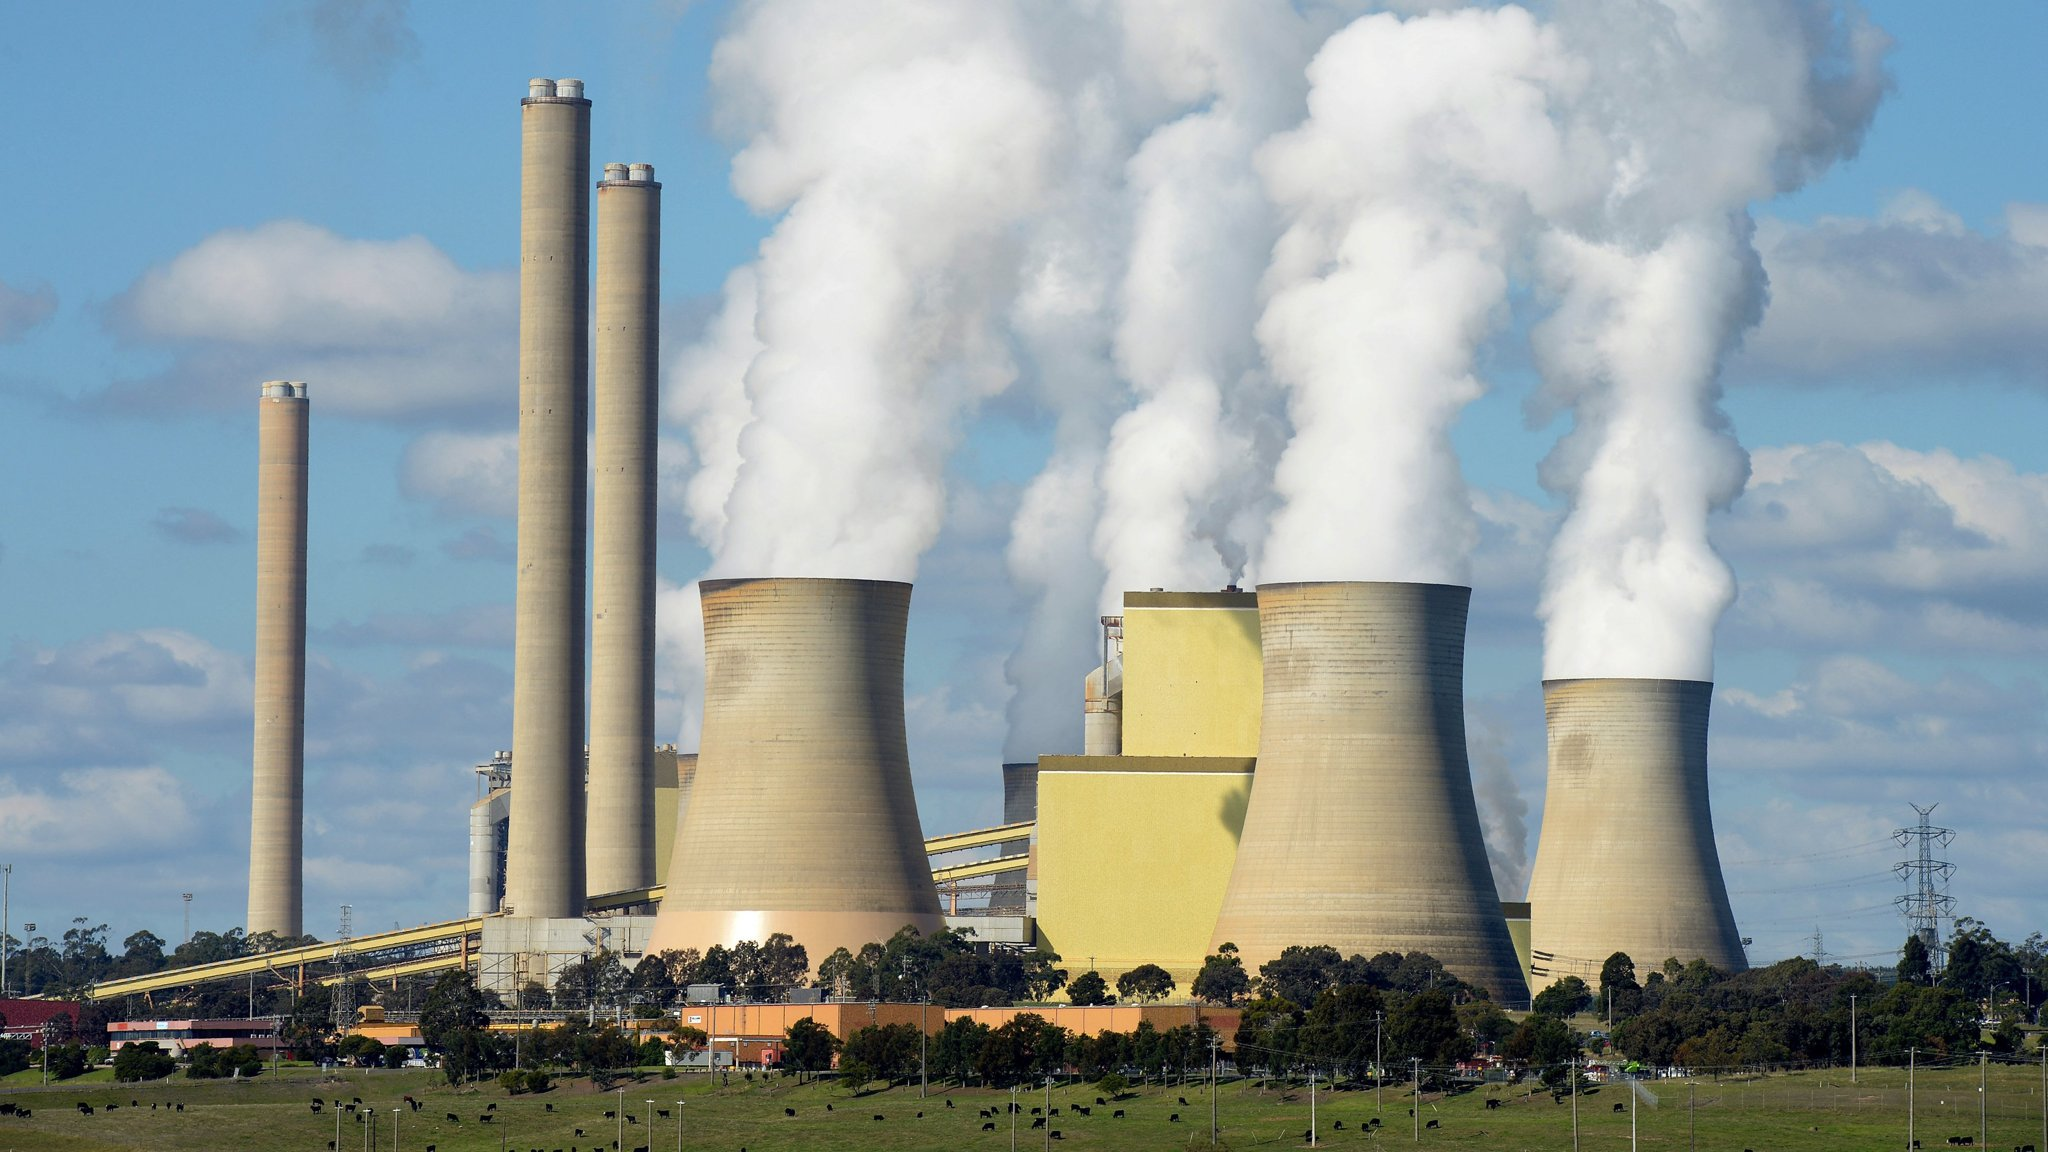 AGL Incurs Canberra's Wrath Over Plan To Shut Coal Power